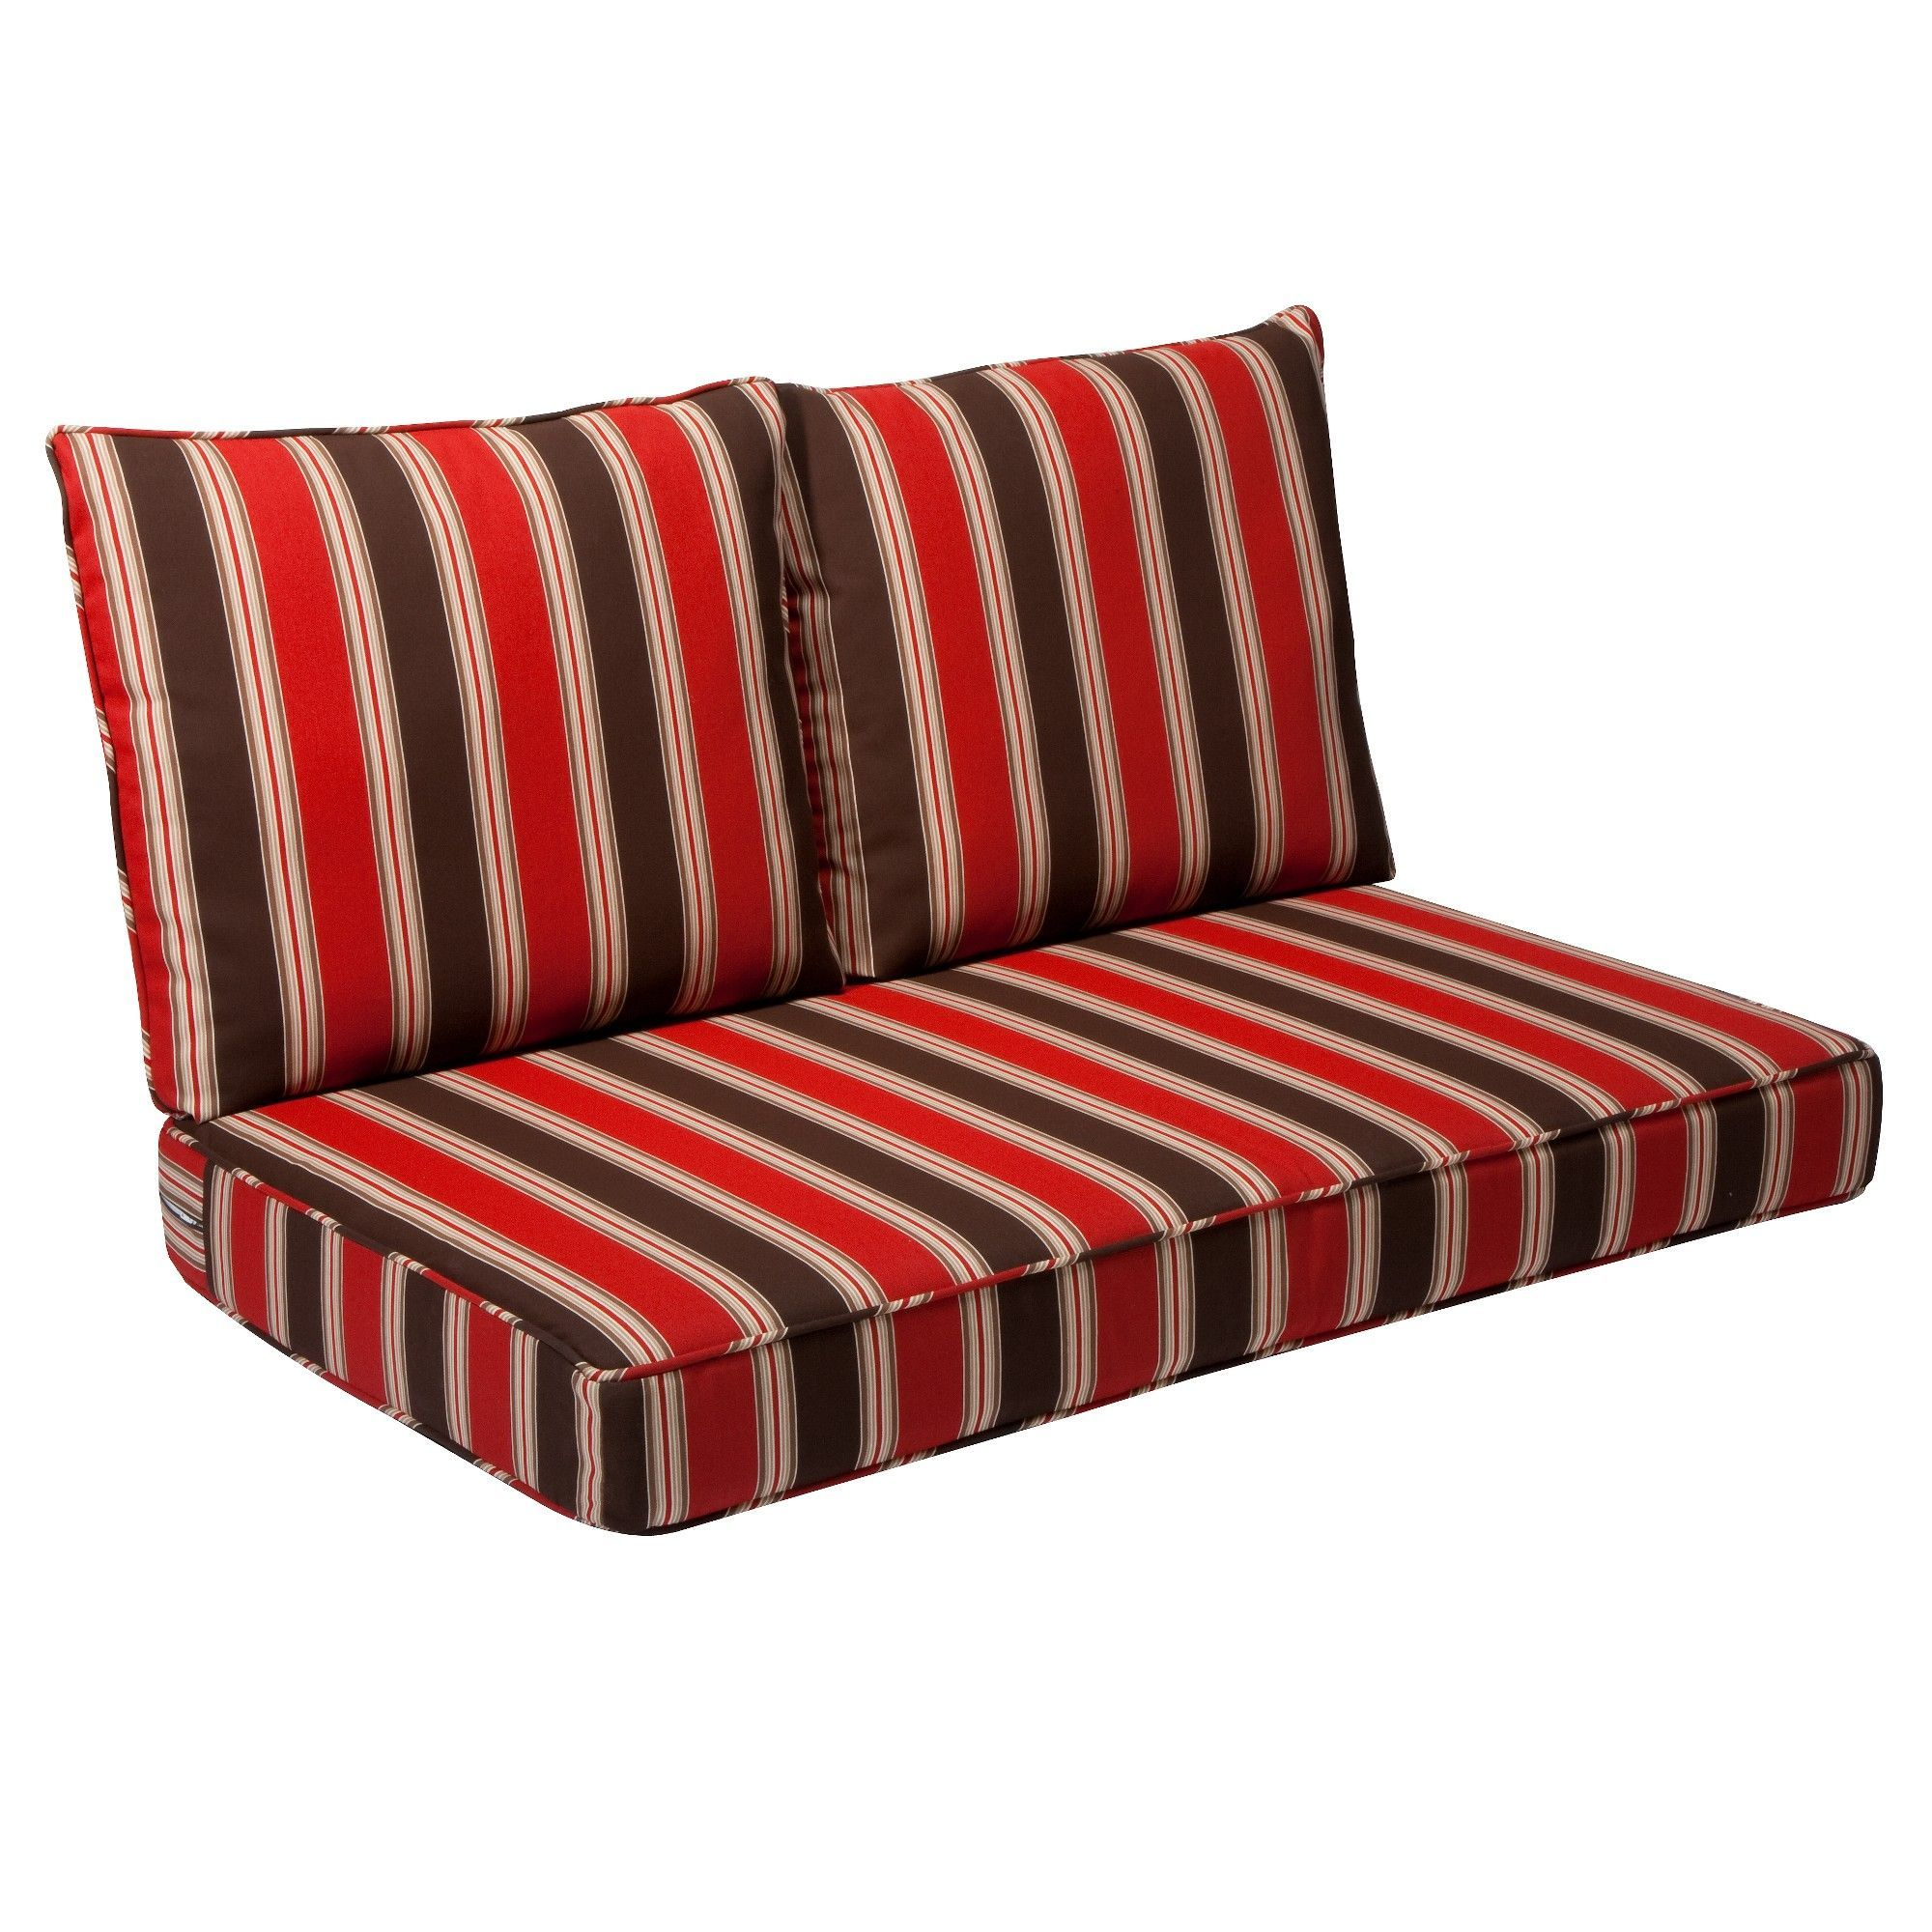 Rolston 3pc Outdoor Replacement Loveseat Cushion Set Red